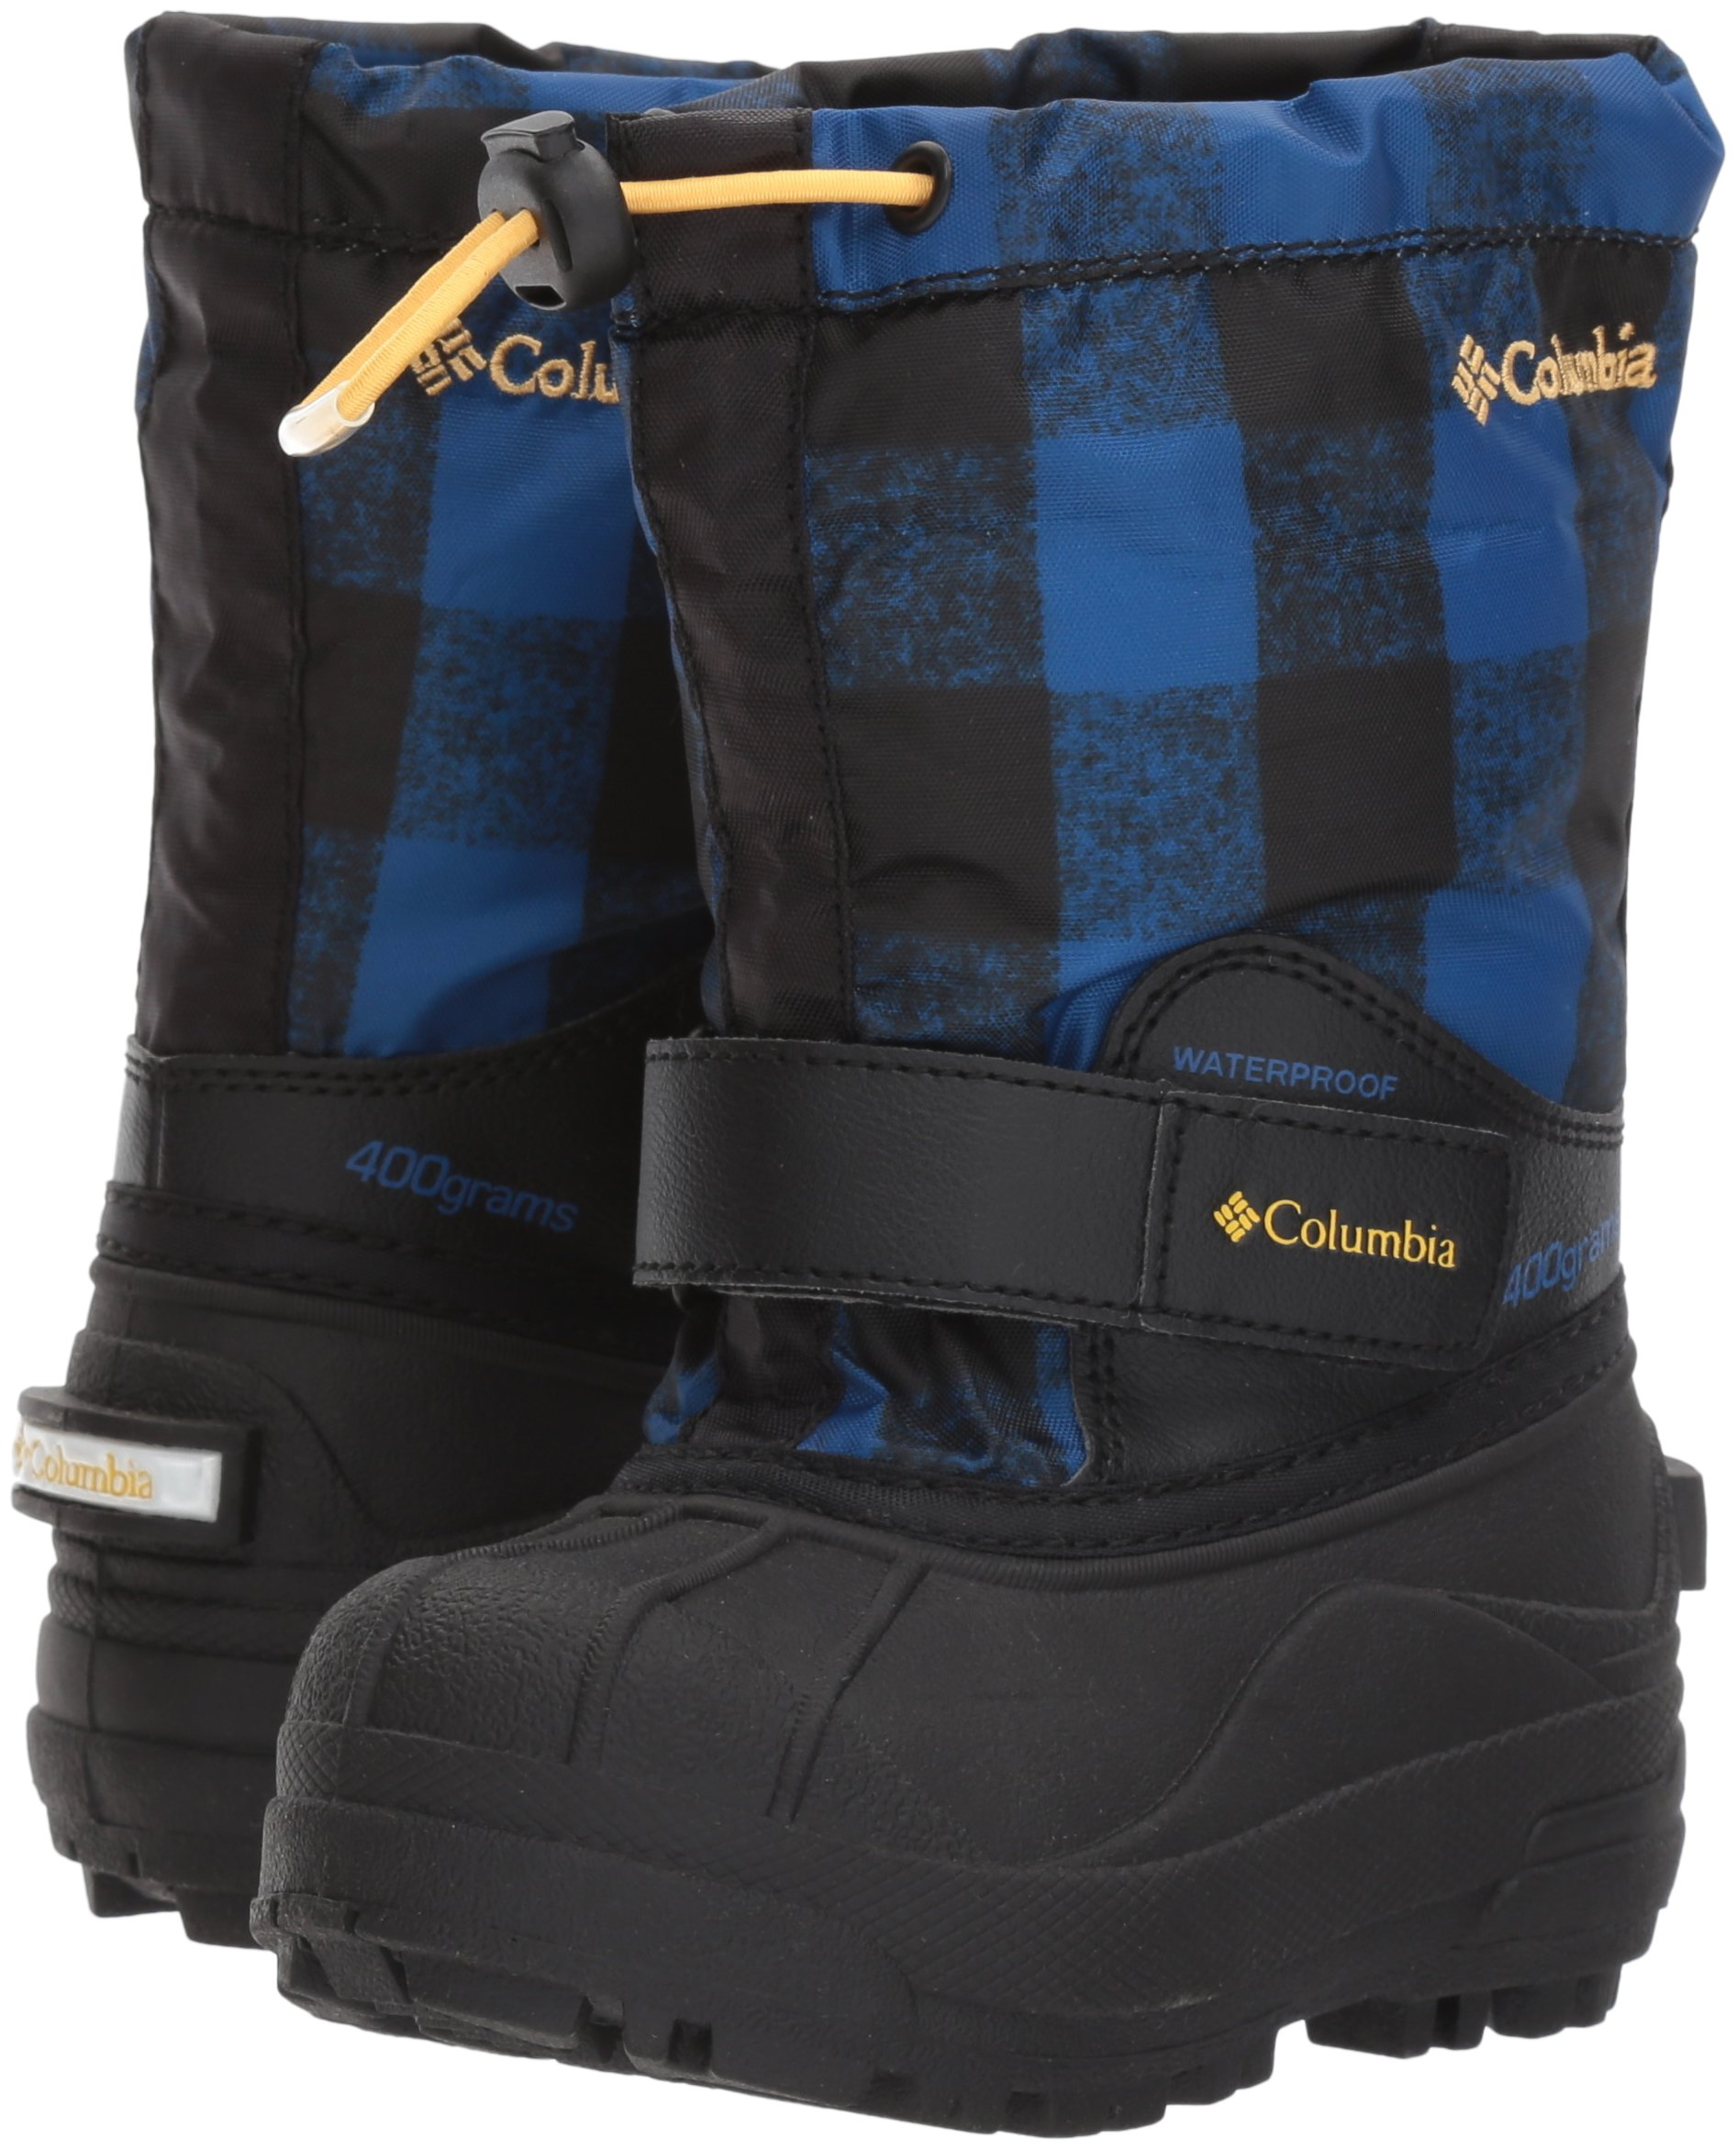 Columbia Unisex Childrens Powderbug Forty Print, Royal, Golden Nugget, 9 M US Little Kid by Columbia (Image #6)